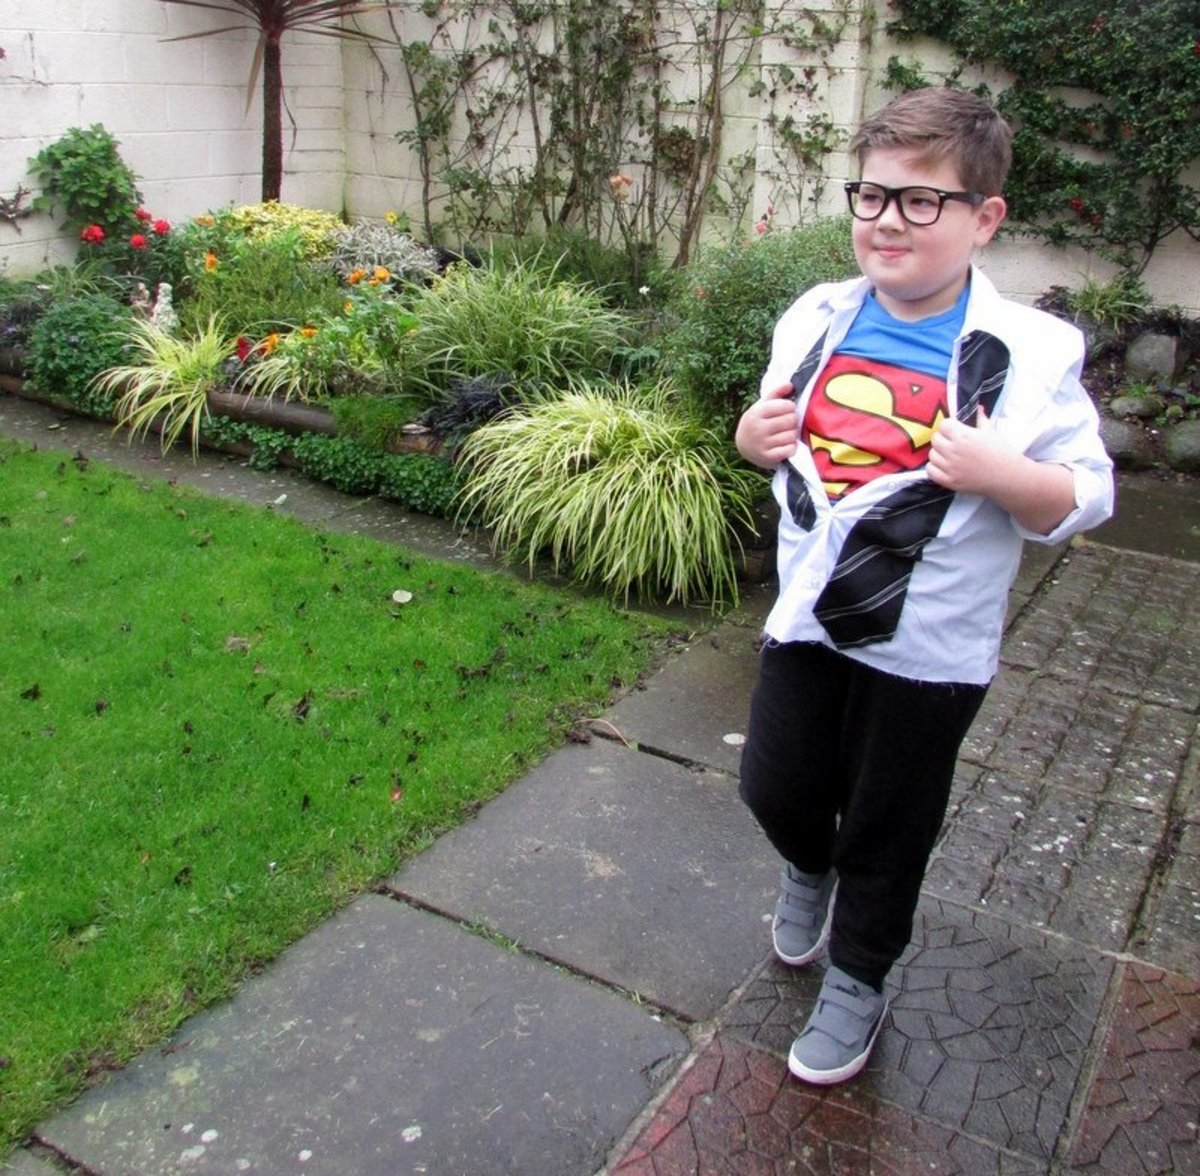 How to Make a DIY Superman/Clark Kent Halloween Costume